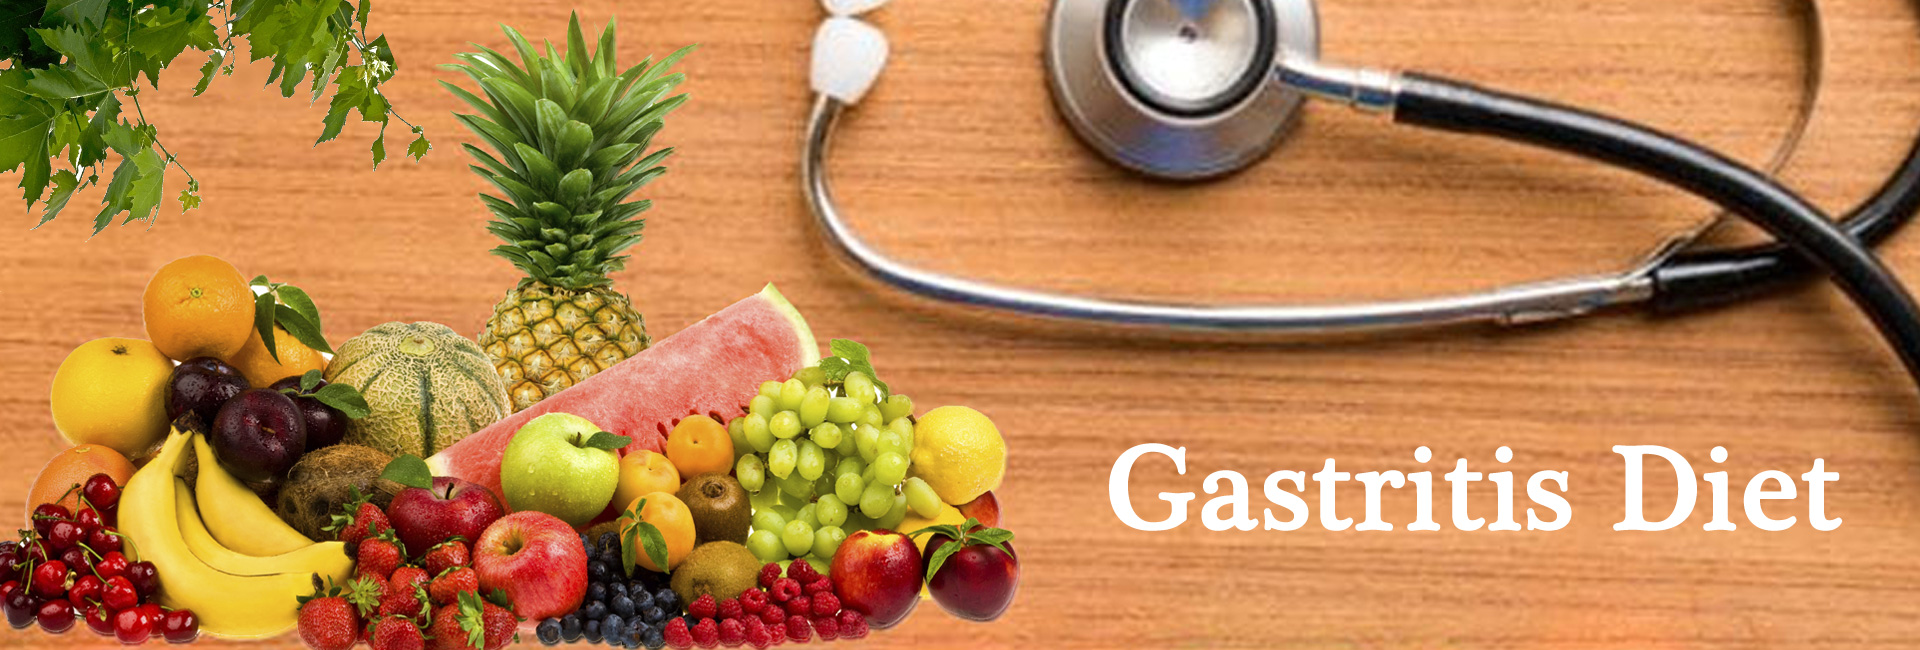 Gastritis Diet In Belleterre